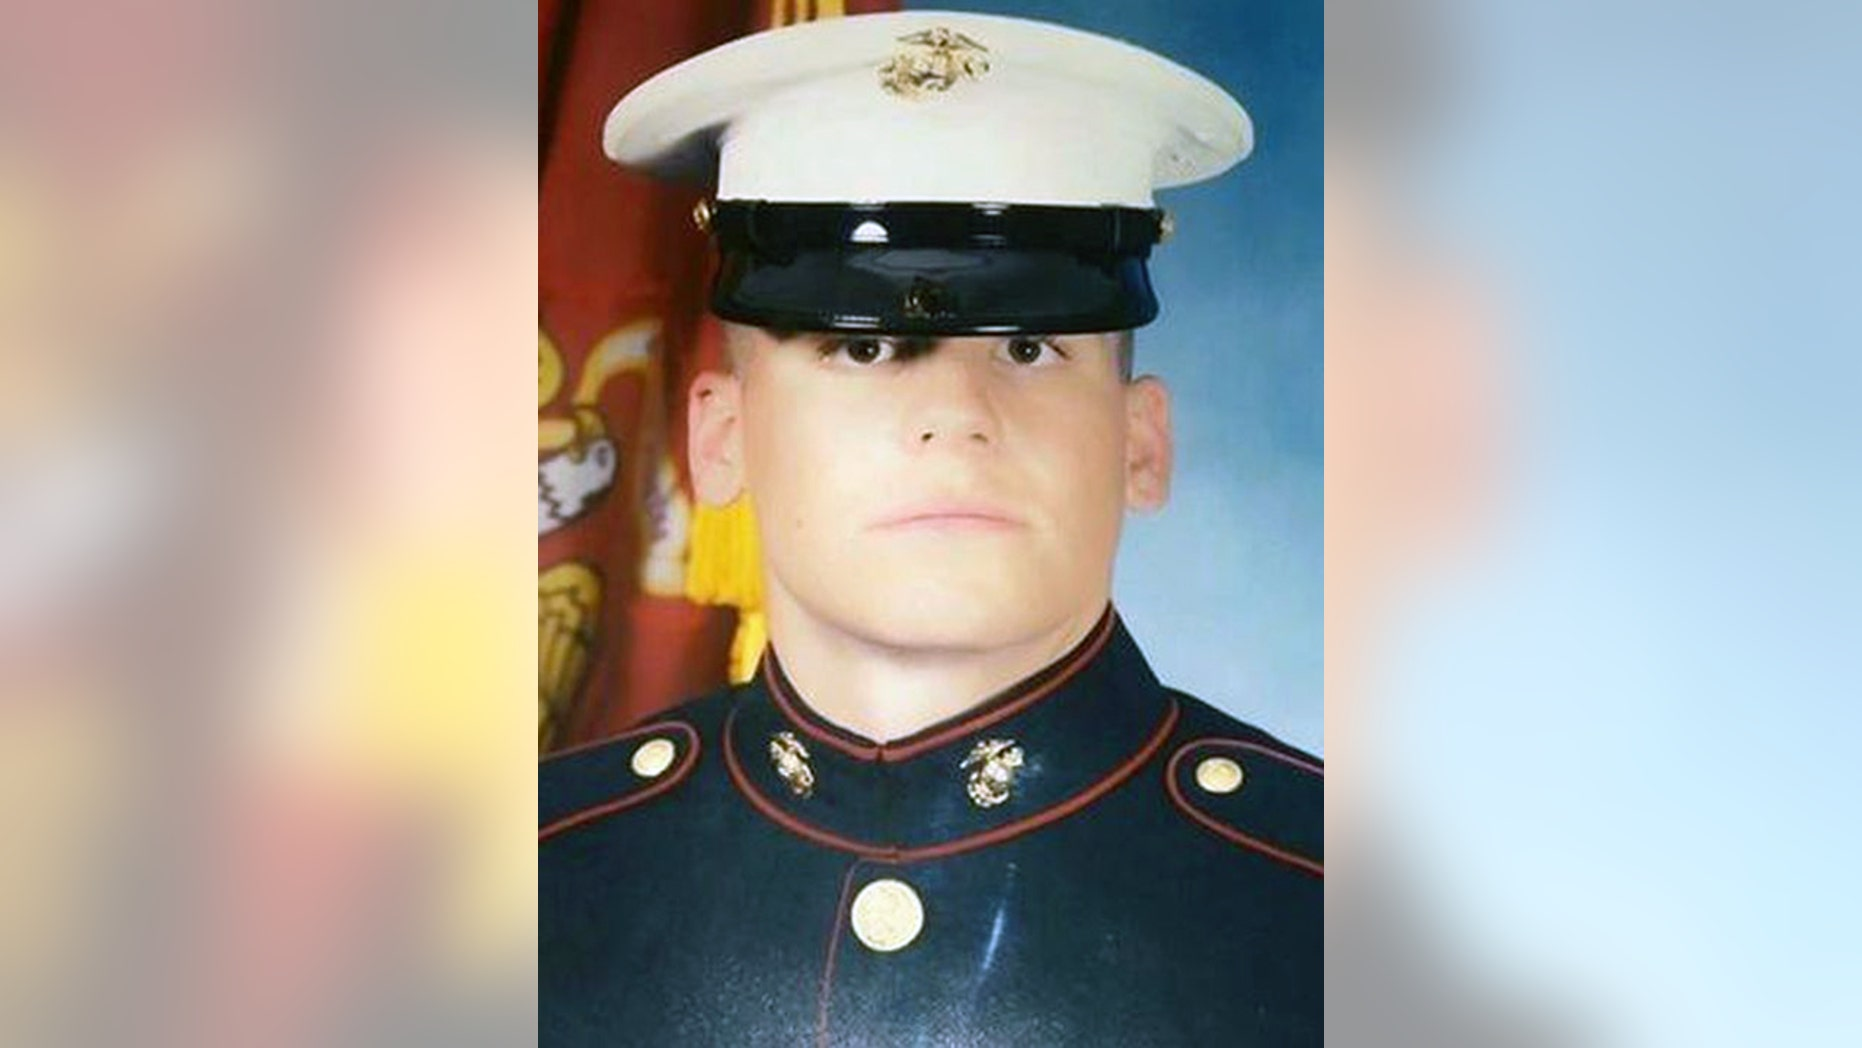 Jason Simcakoski died at the Tomah VA facility in 2014